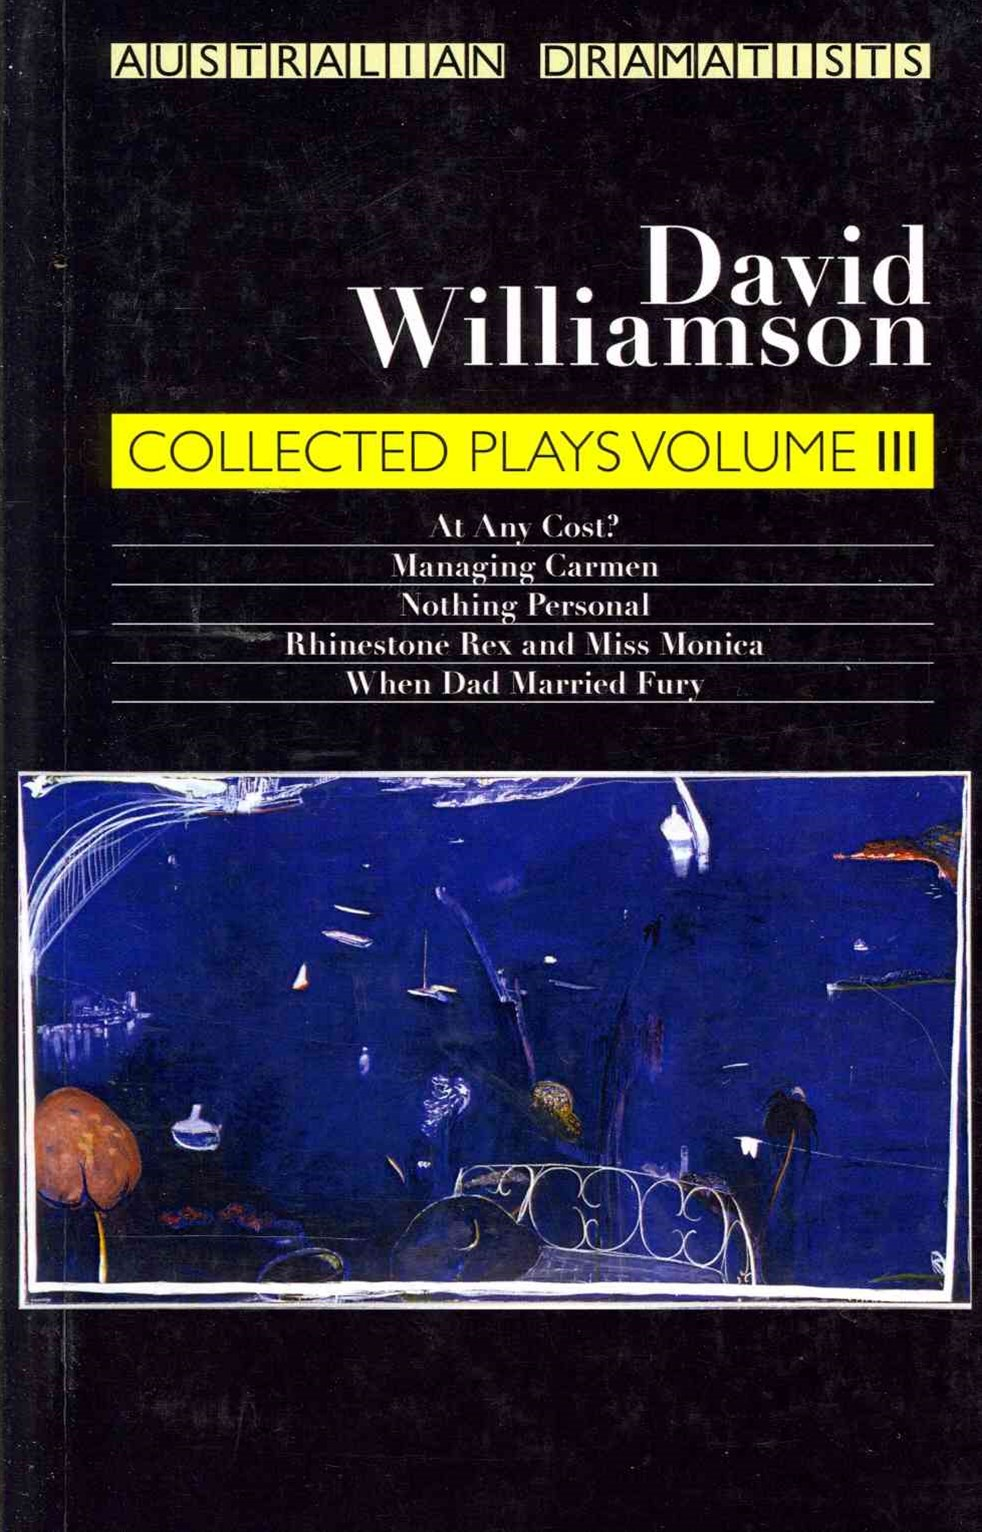 David Williamson Collected Plays Vol. 3